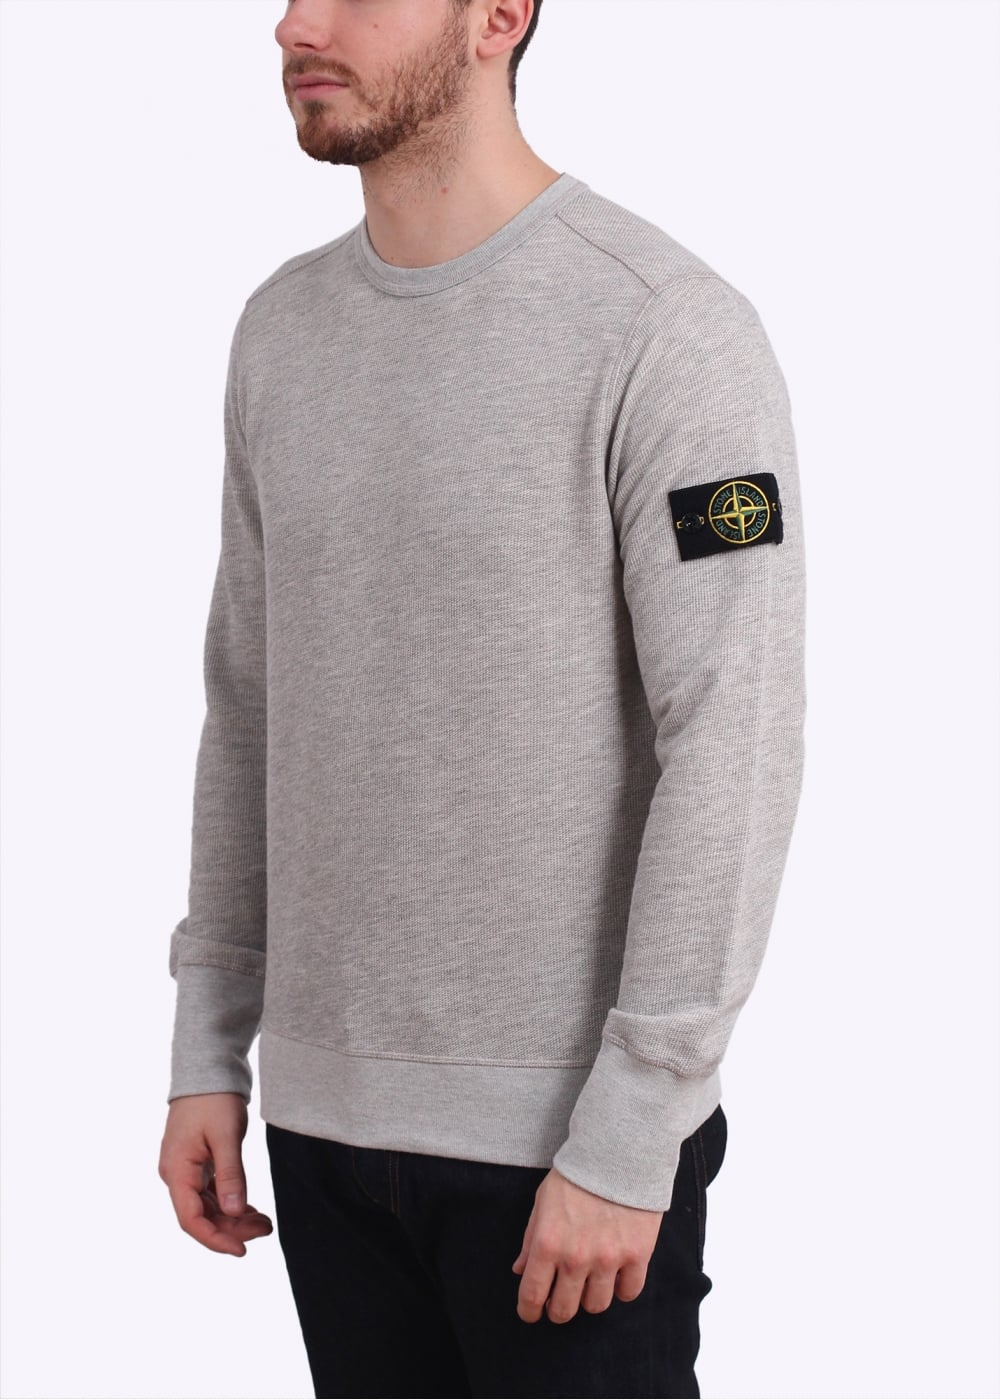 stone island crew sweatshirt pearl grey. Black Bedroom Furniture Sets. Home Design Ideas